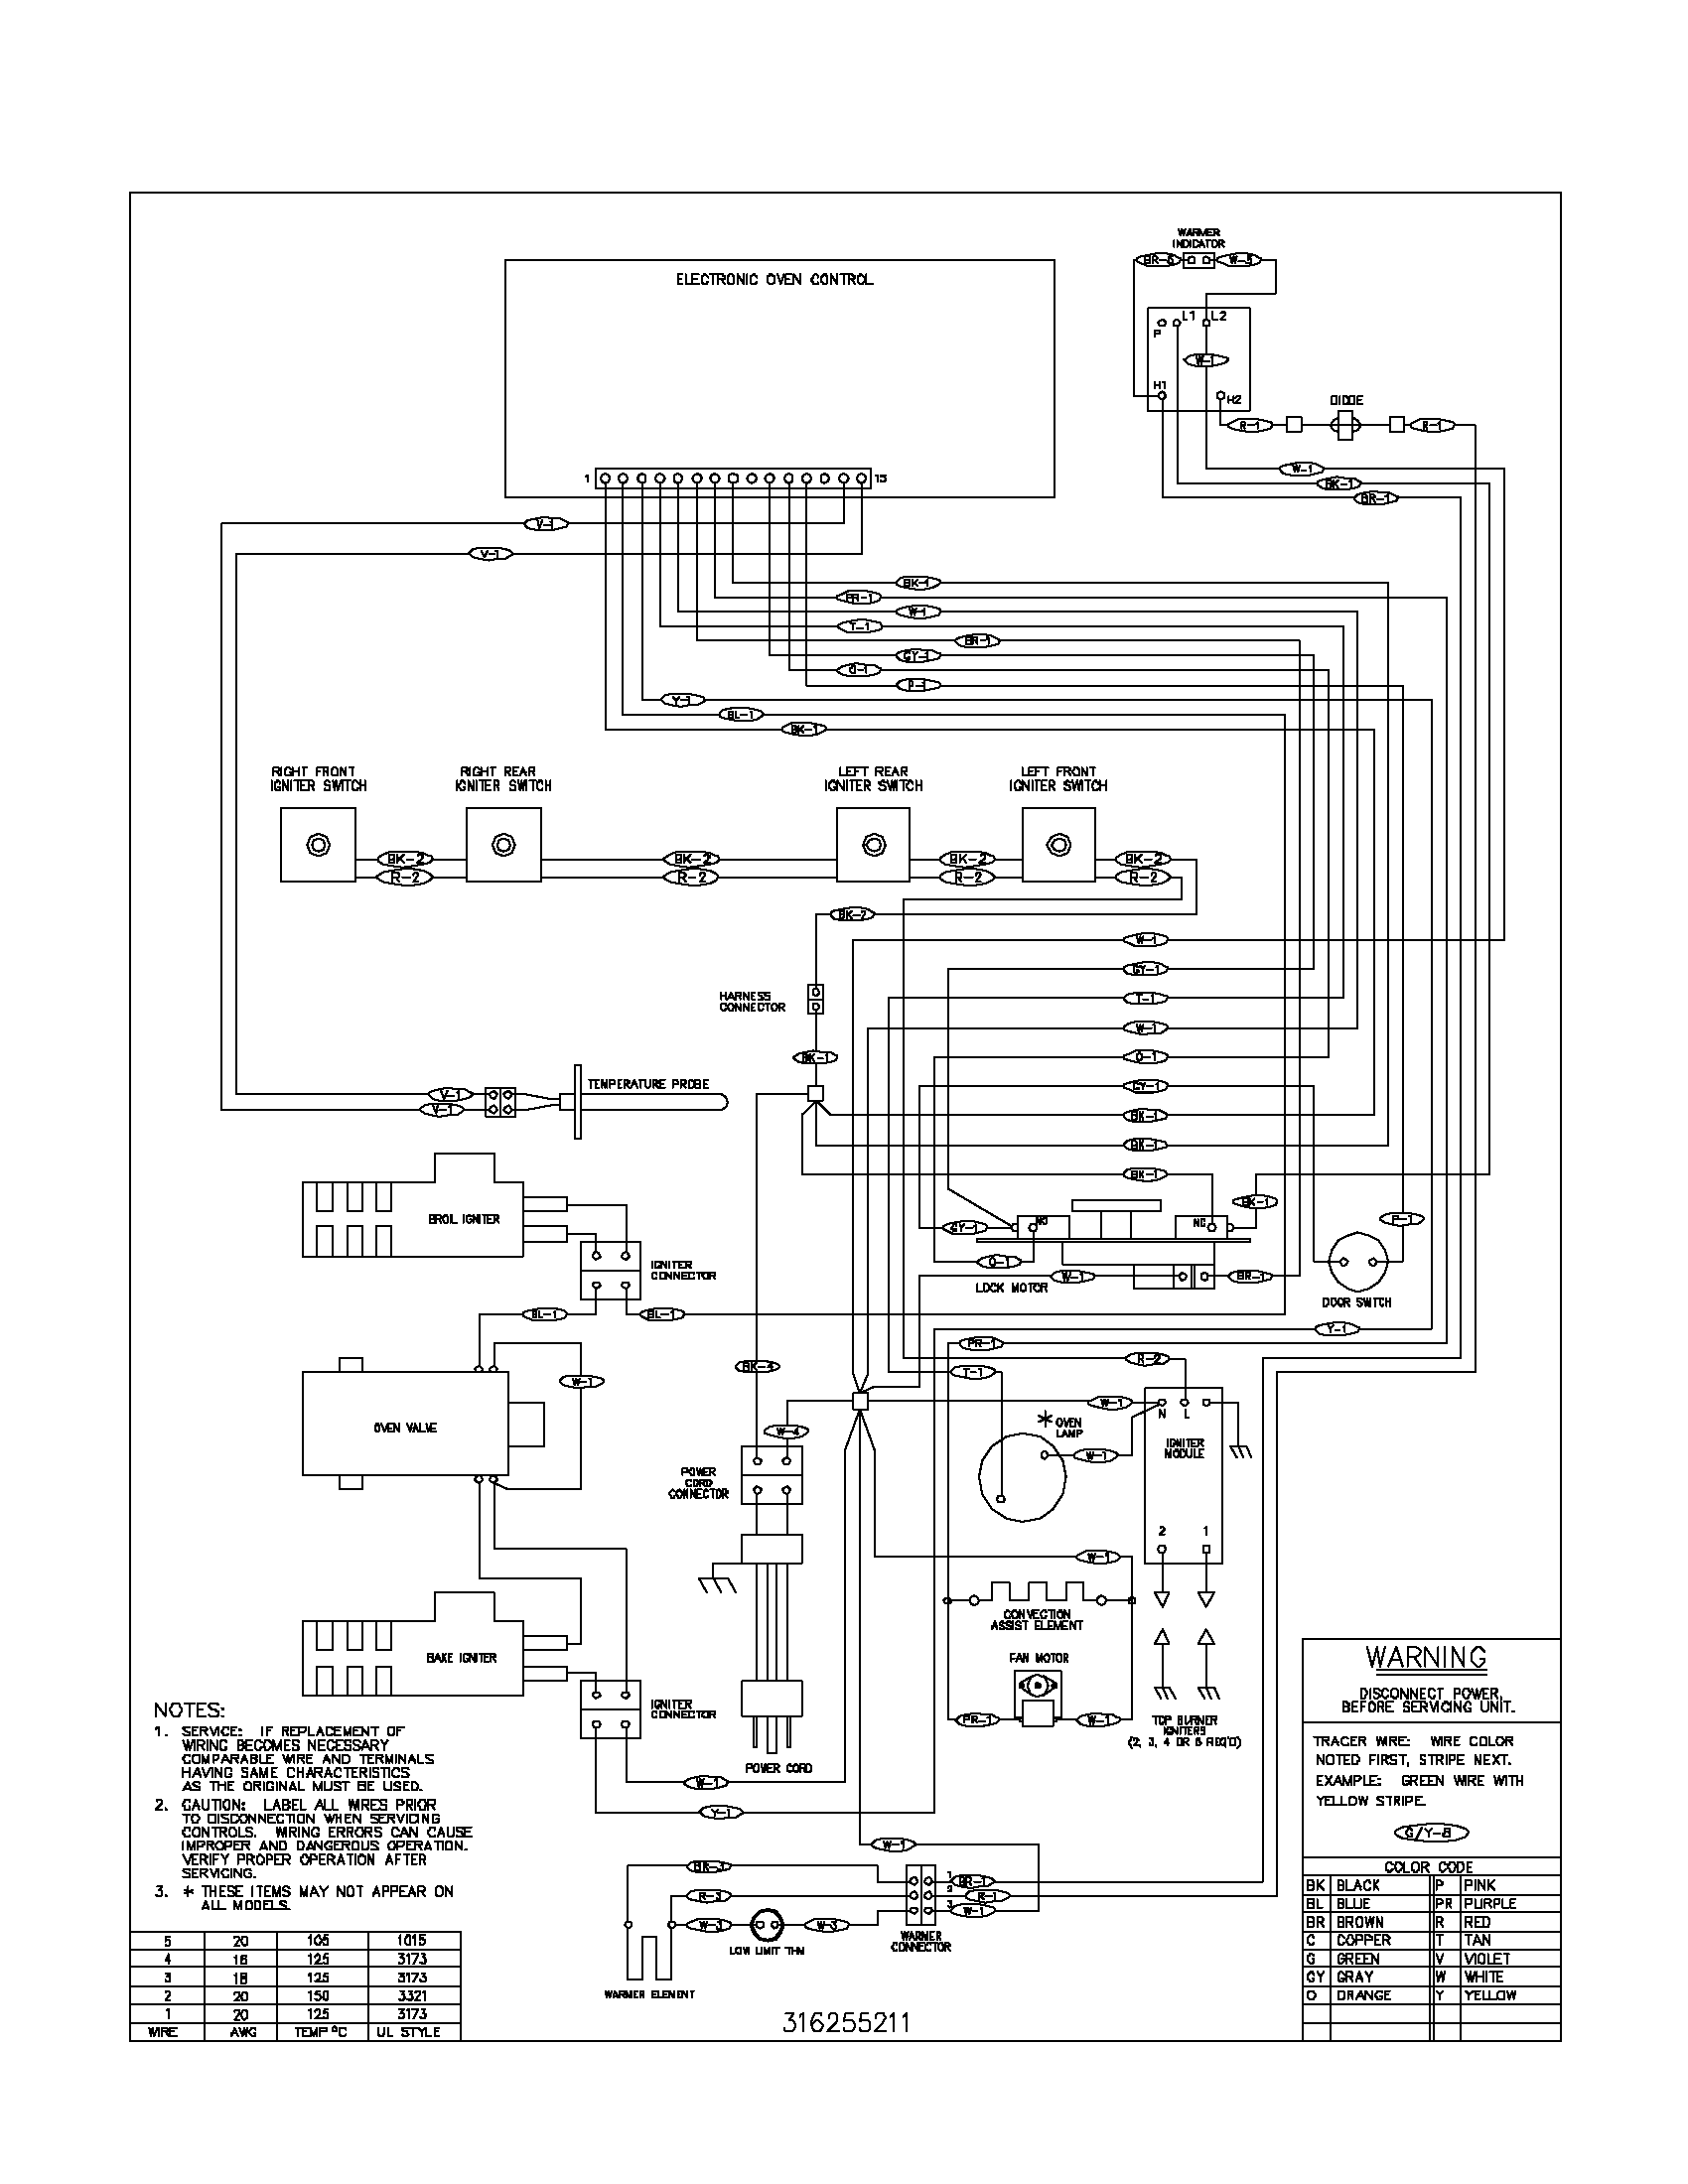 Honeywell Gas Valve With Rectifier Wiring Diagram 49 Control Furnace Fireplace Partsresize6652c861